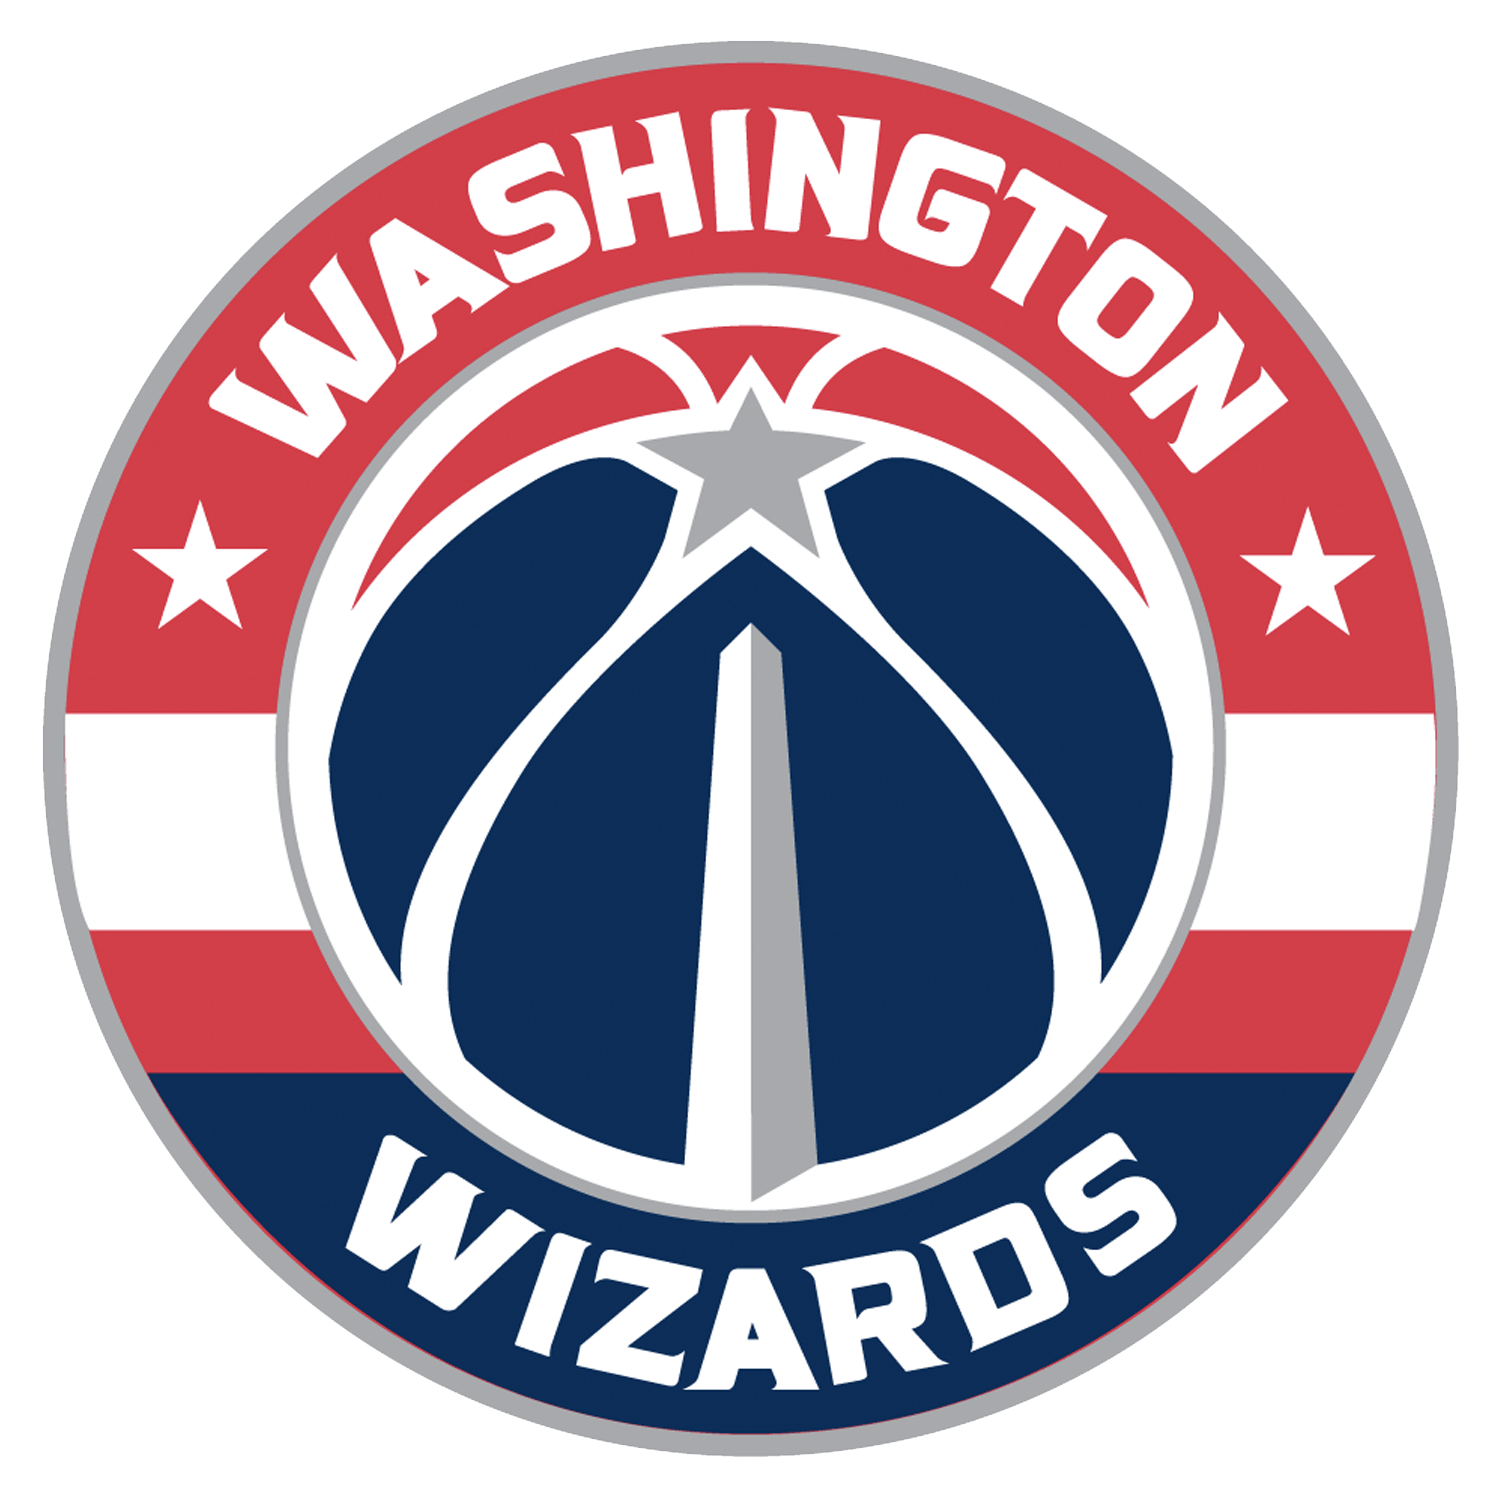 Wizards Game to Help Support Woodgrove